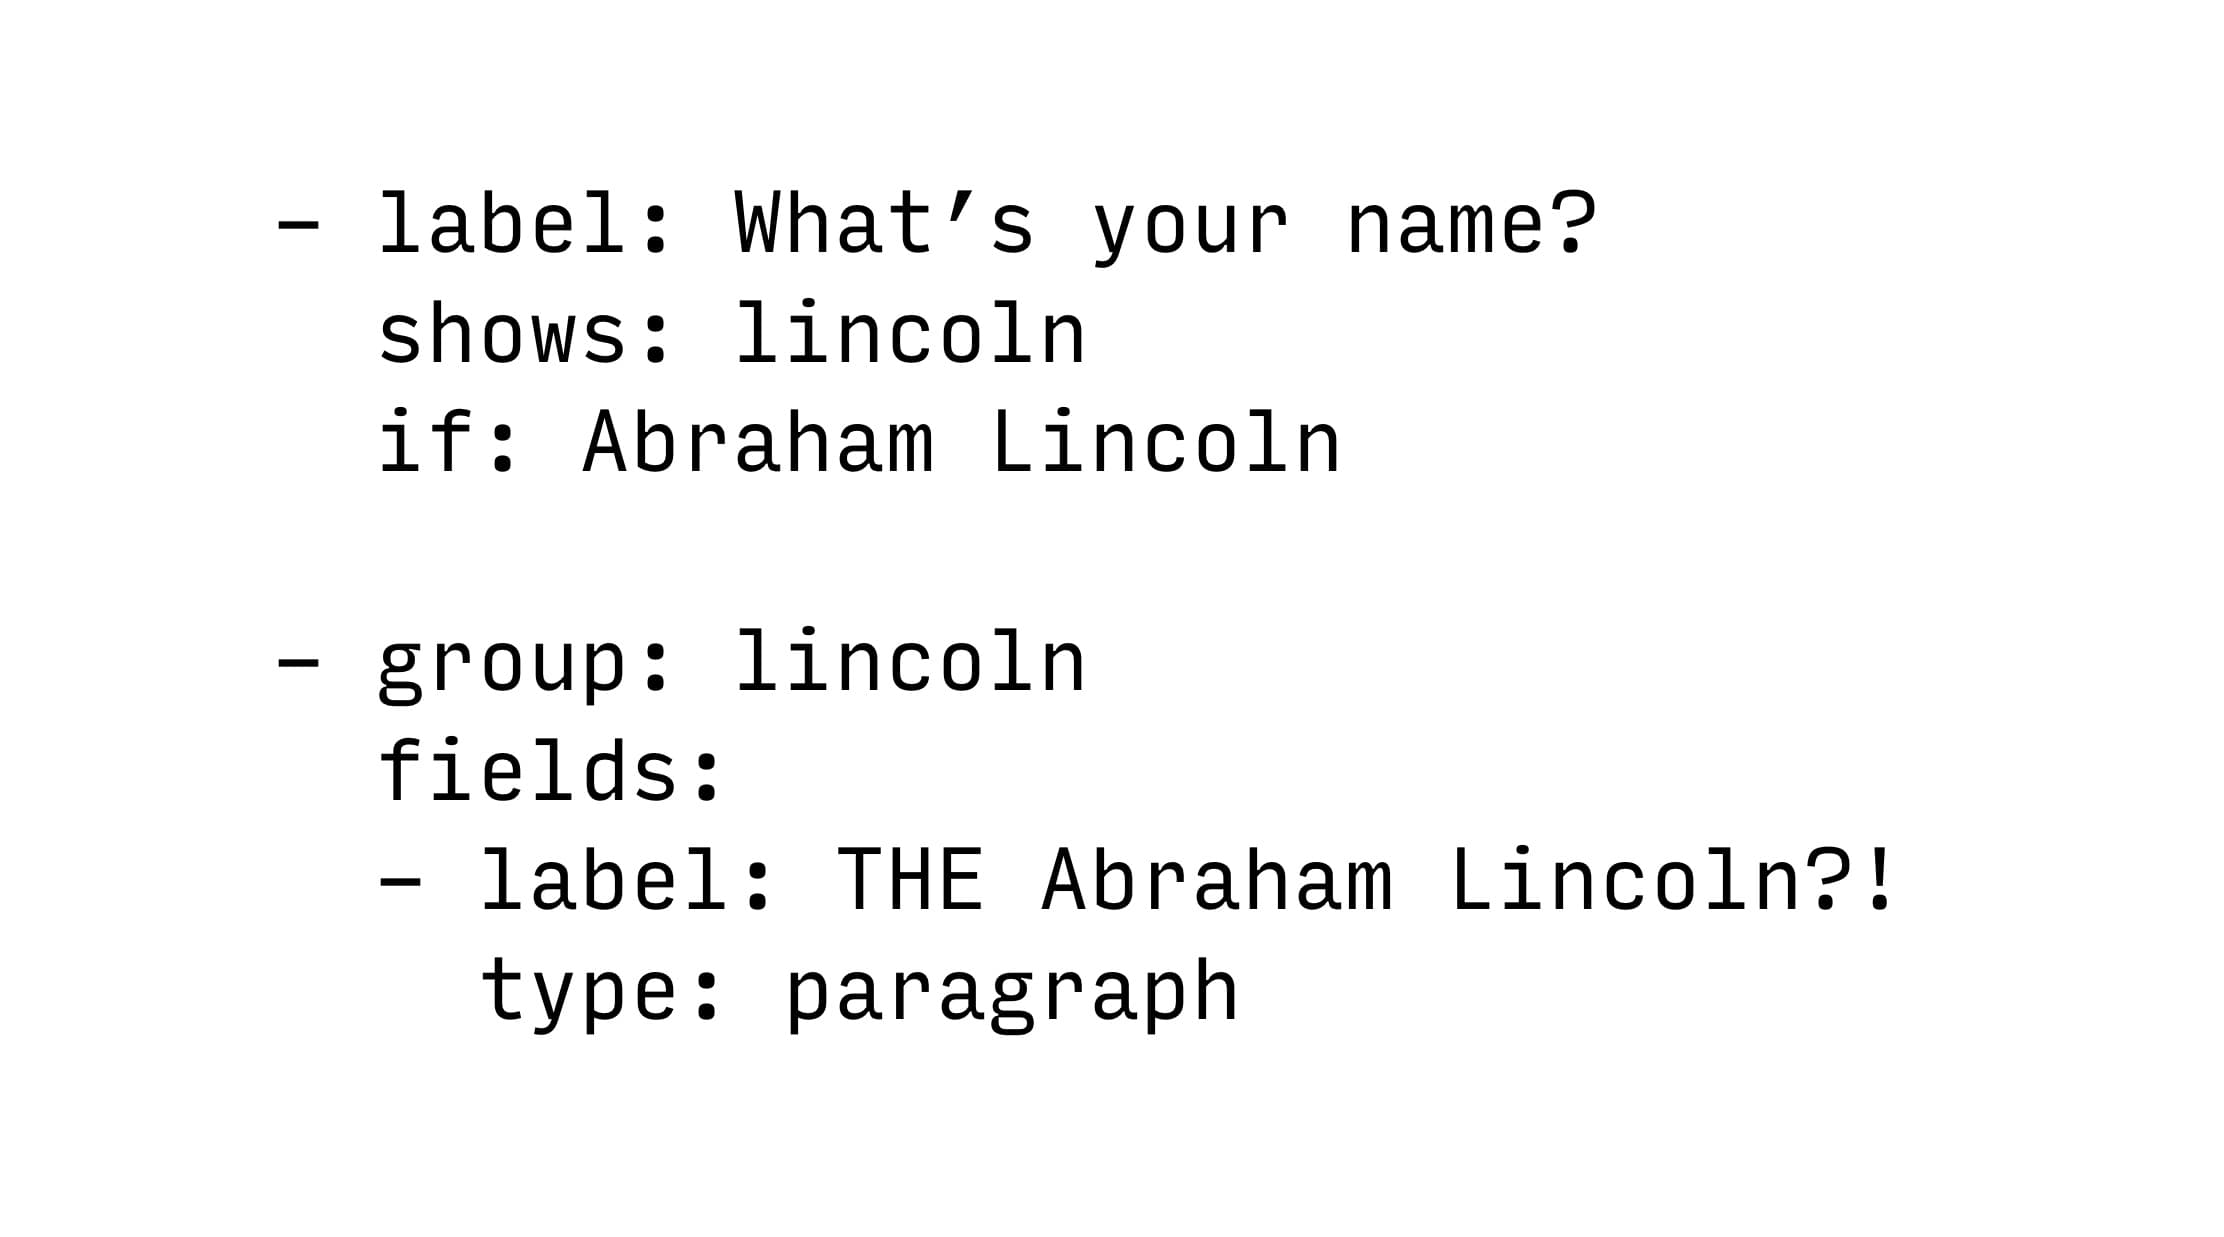 "Show ""THE Abraham Lincoln?!"" if the answer to ""What's your name?"" is ""Abraham Lincoln"""